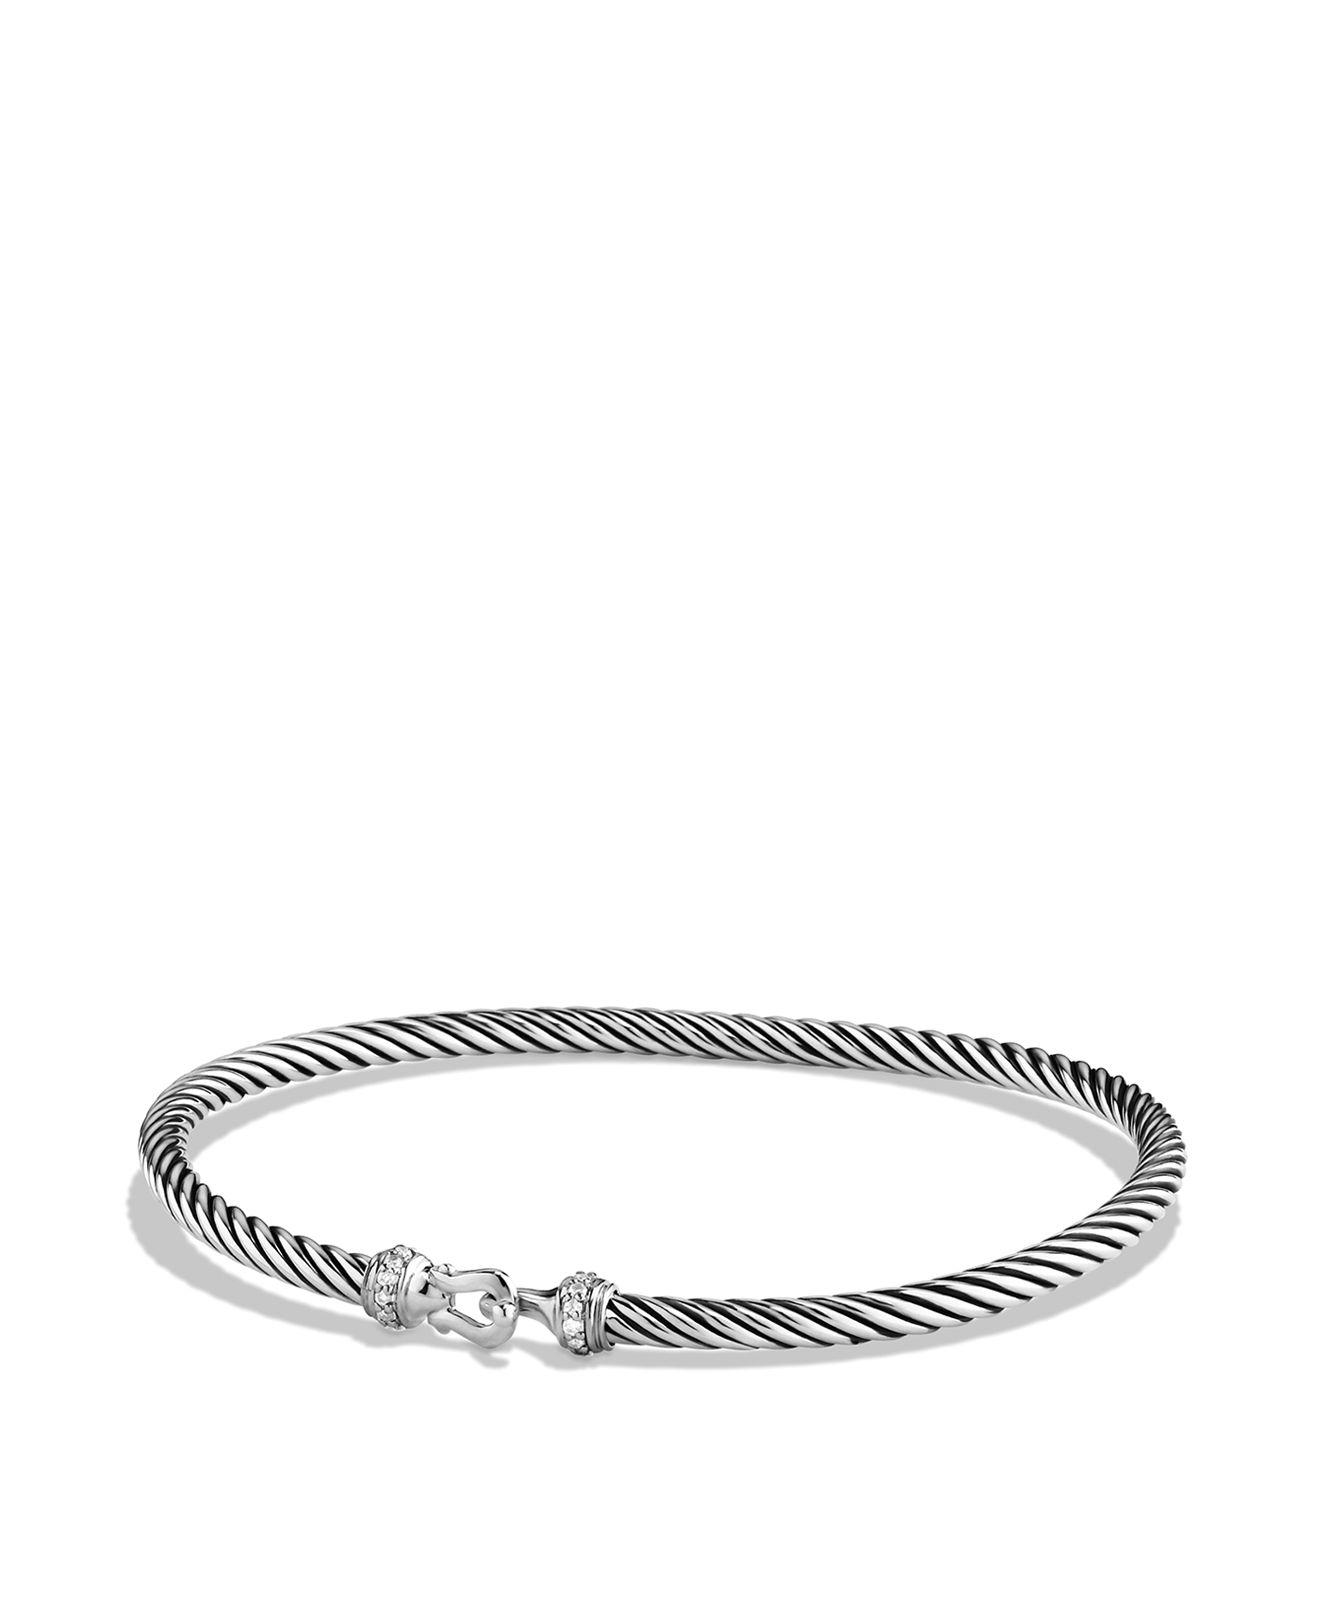 David Yurman Cable buckle bracelet - Metallic joptWwt